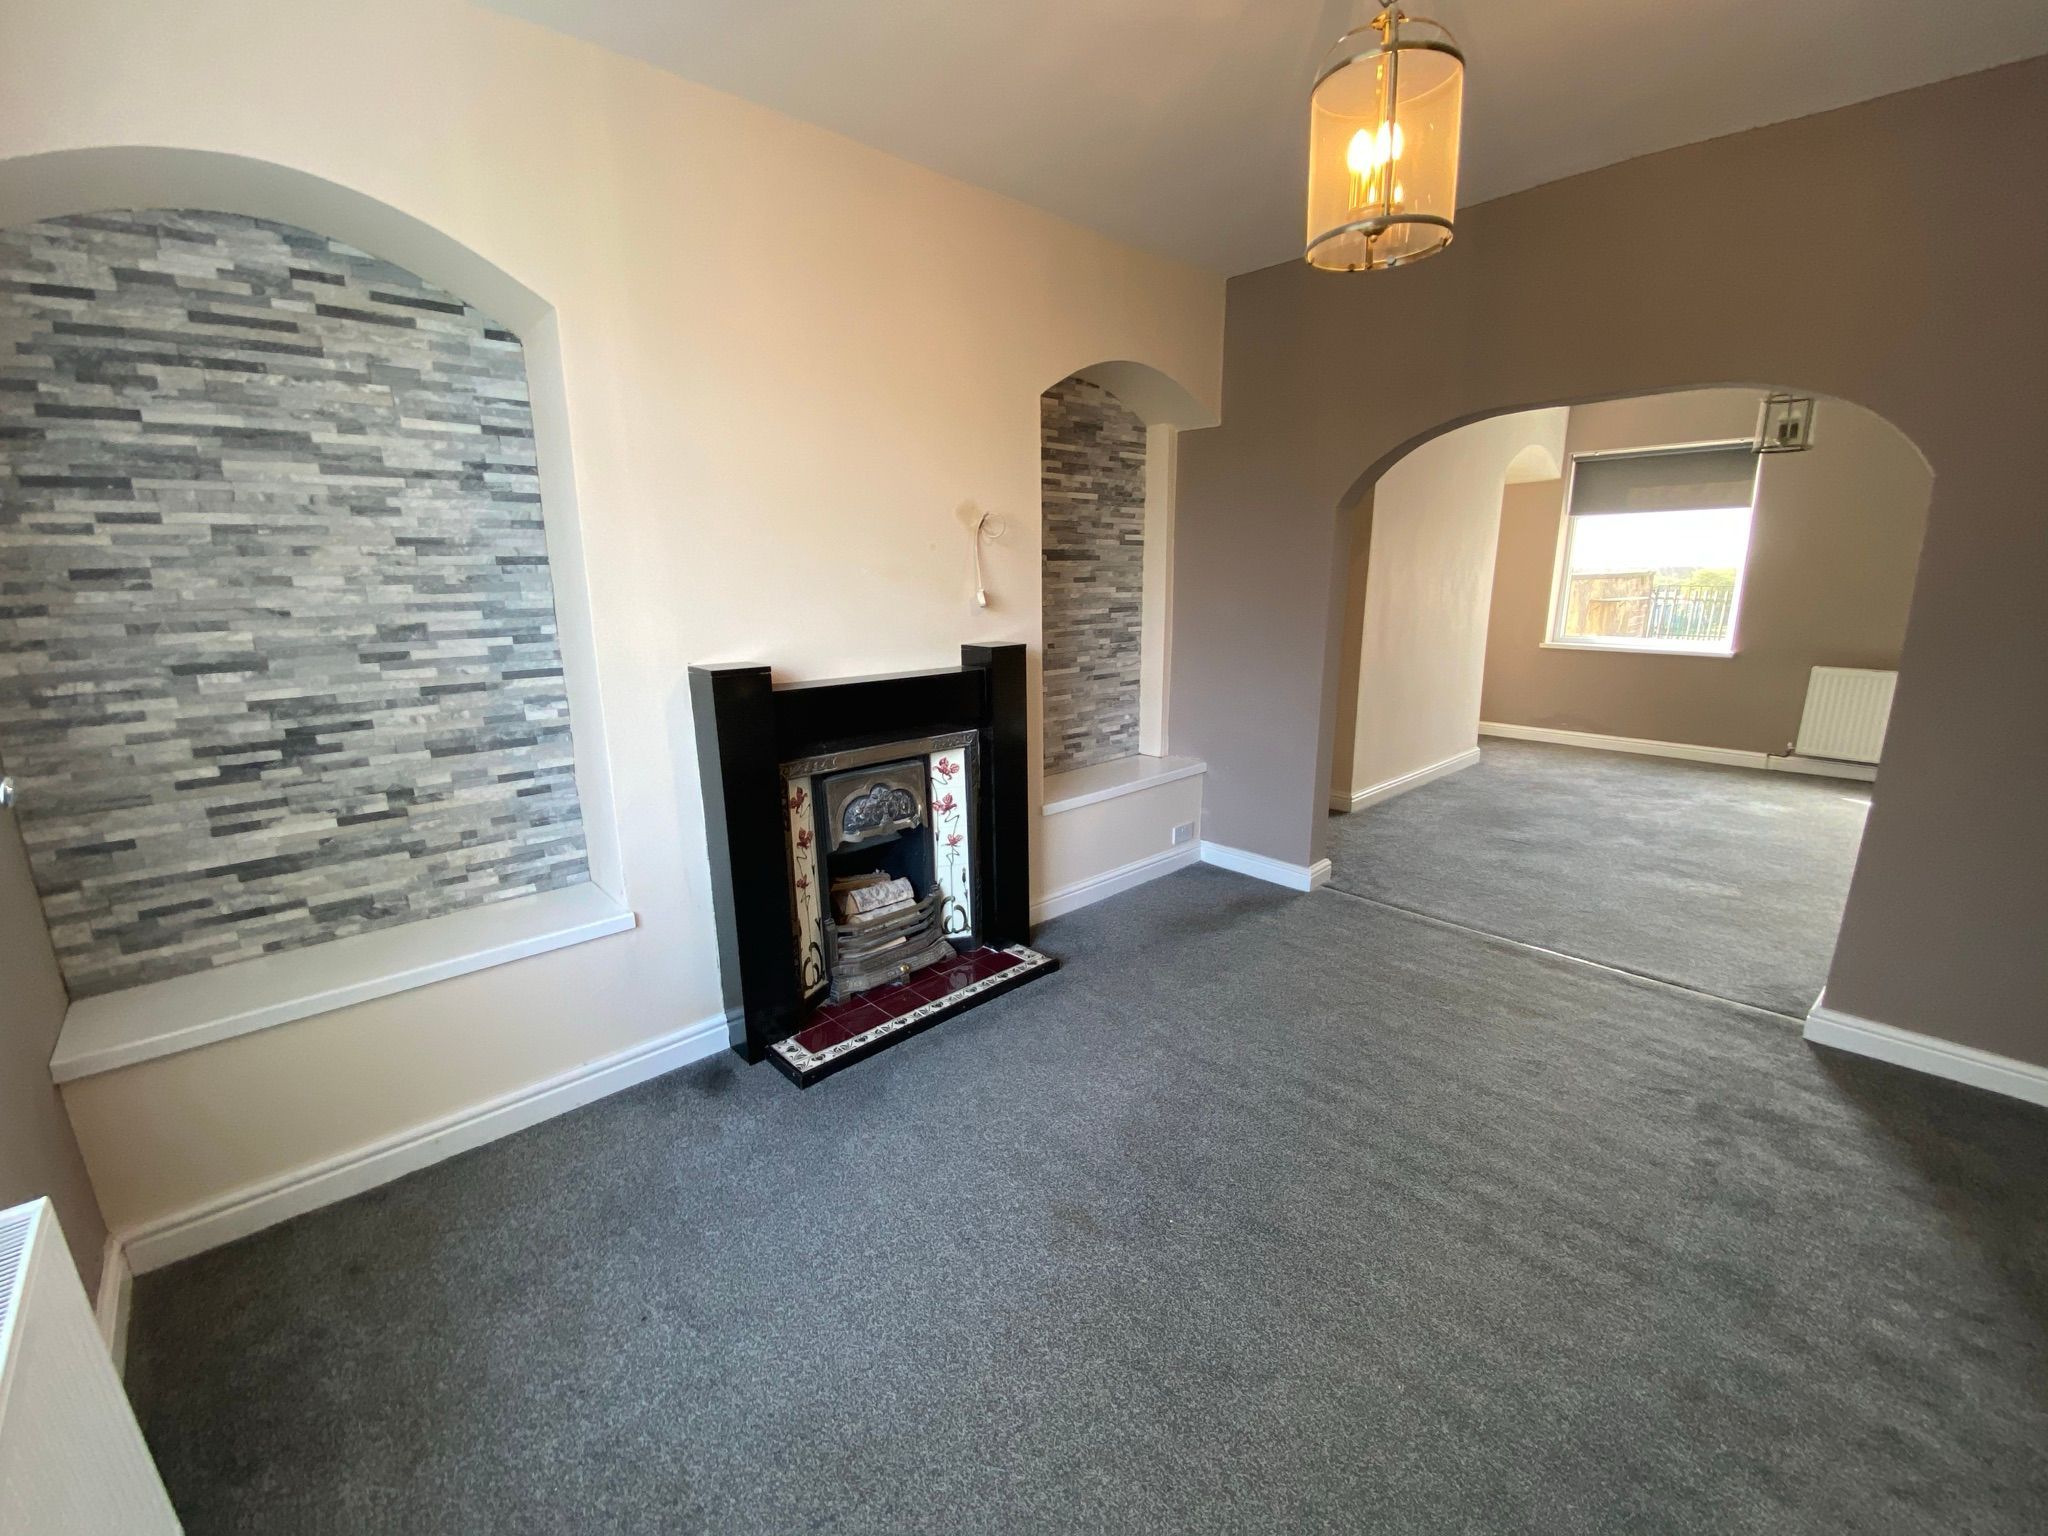 2 bedroom mid terraced house Let Agreed in Ferryhill - Photograph 2.